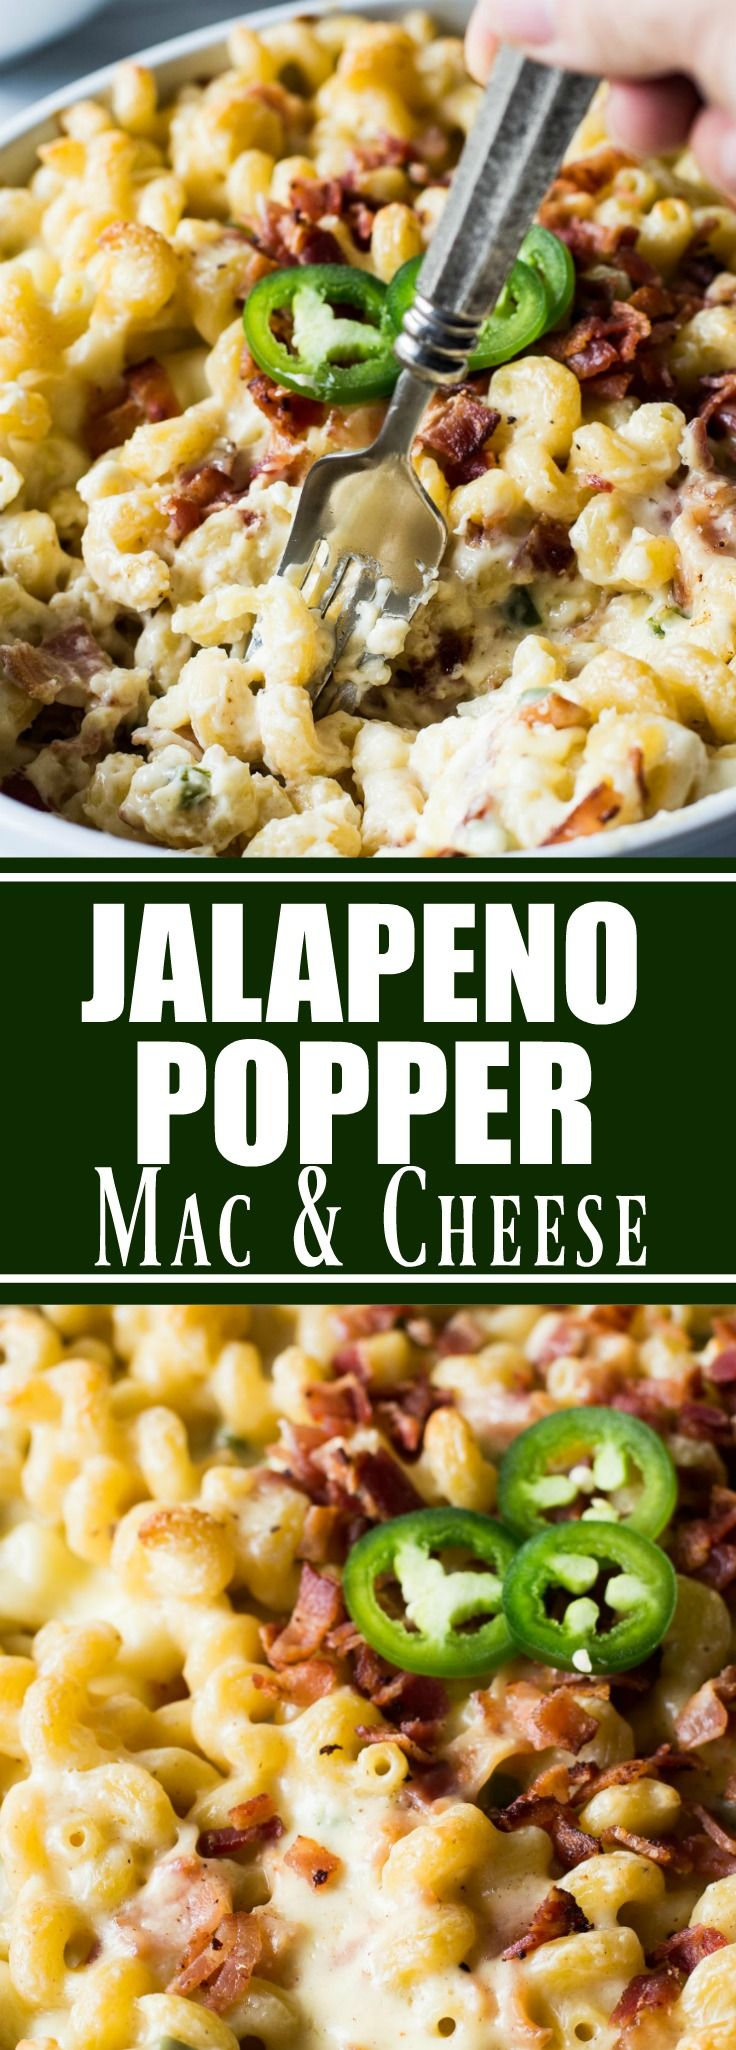 Jalapeno Popper Macaroni and Cheese! This macaroni and cheese tastes just like a jalapeño popper!! Loaded up with fresh jalapeño. Bits of crispy bacon. And the homemade sauce is made ultra creamy by adding cream cheese! You will never want another macaroni and cheese again once you try this one!